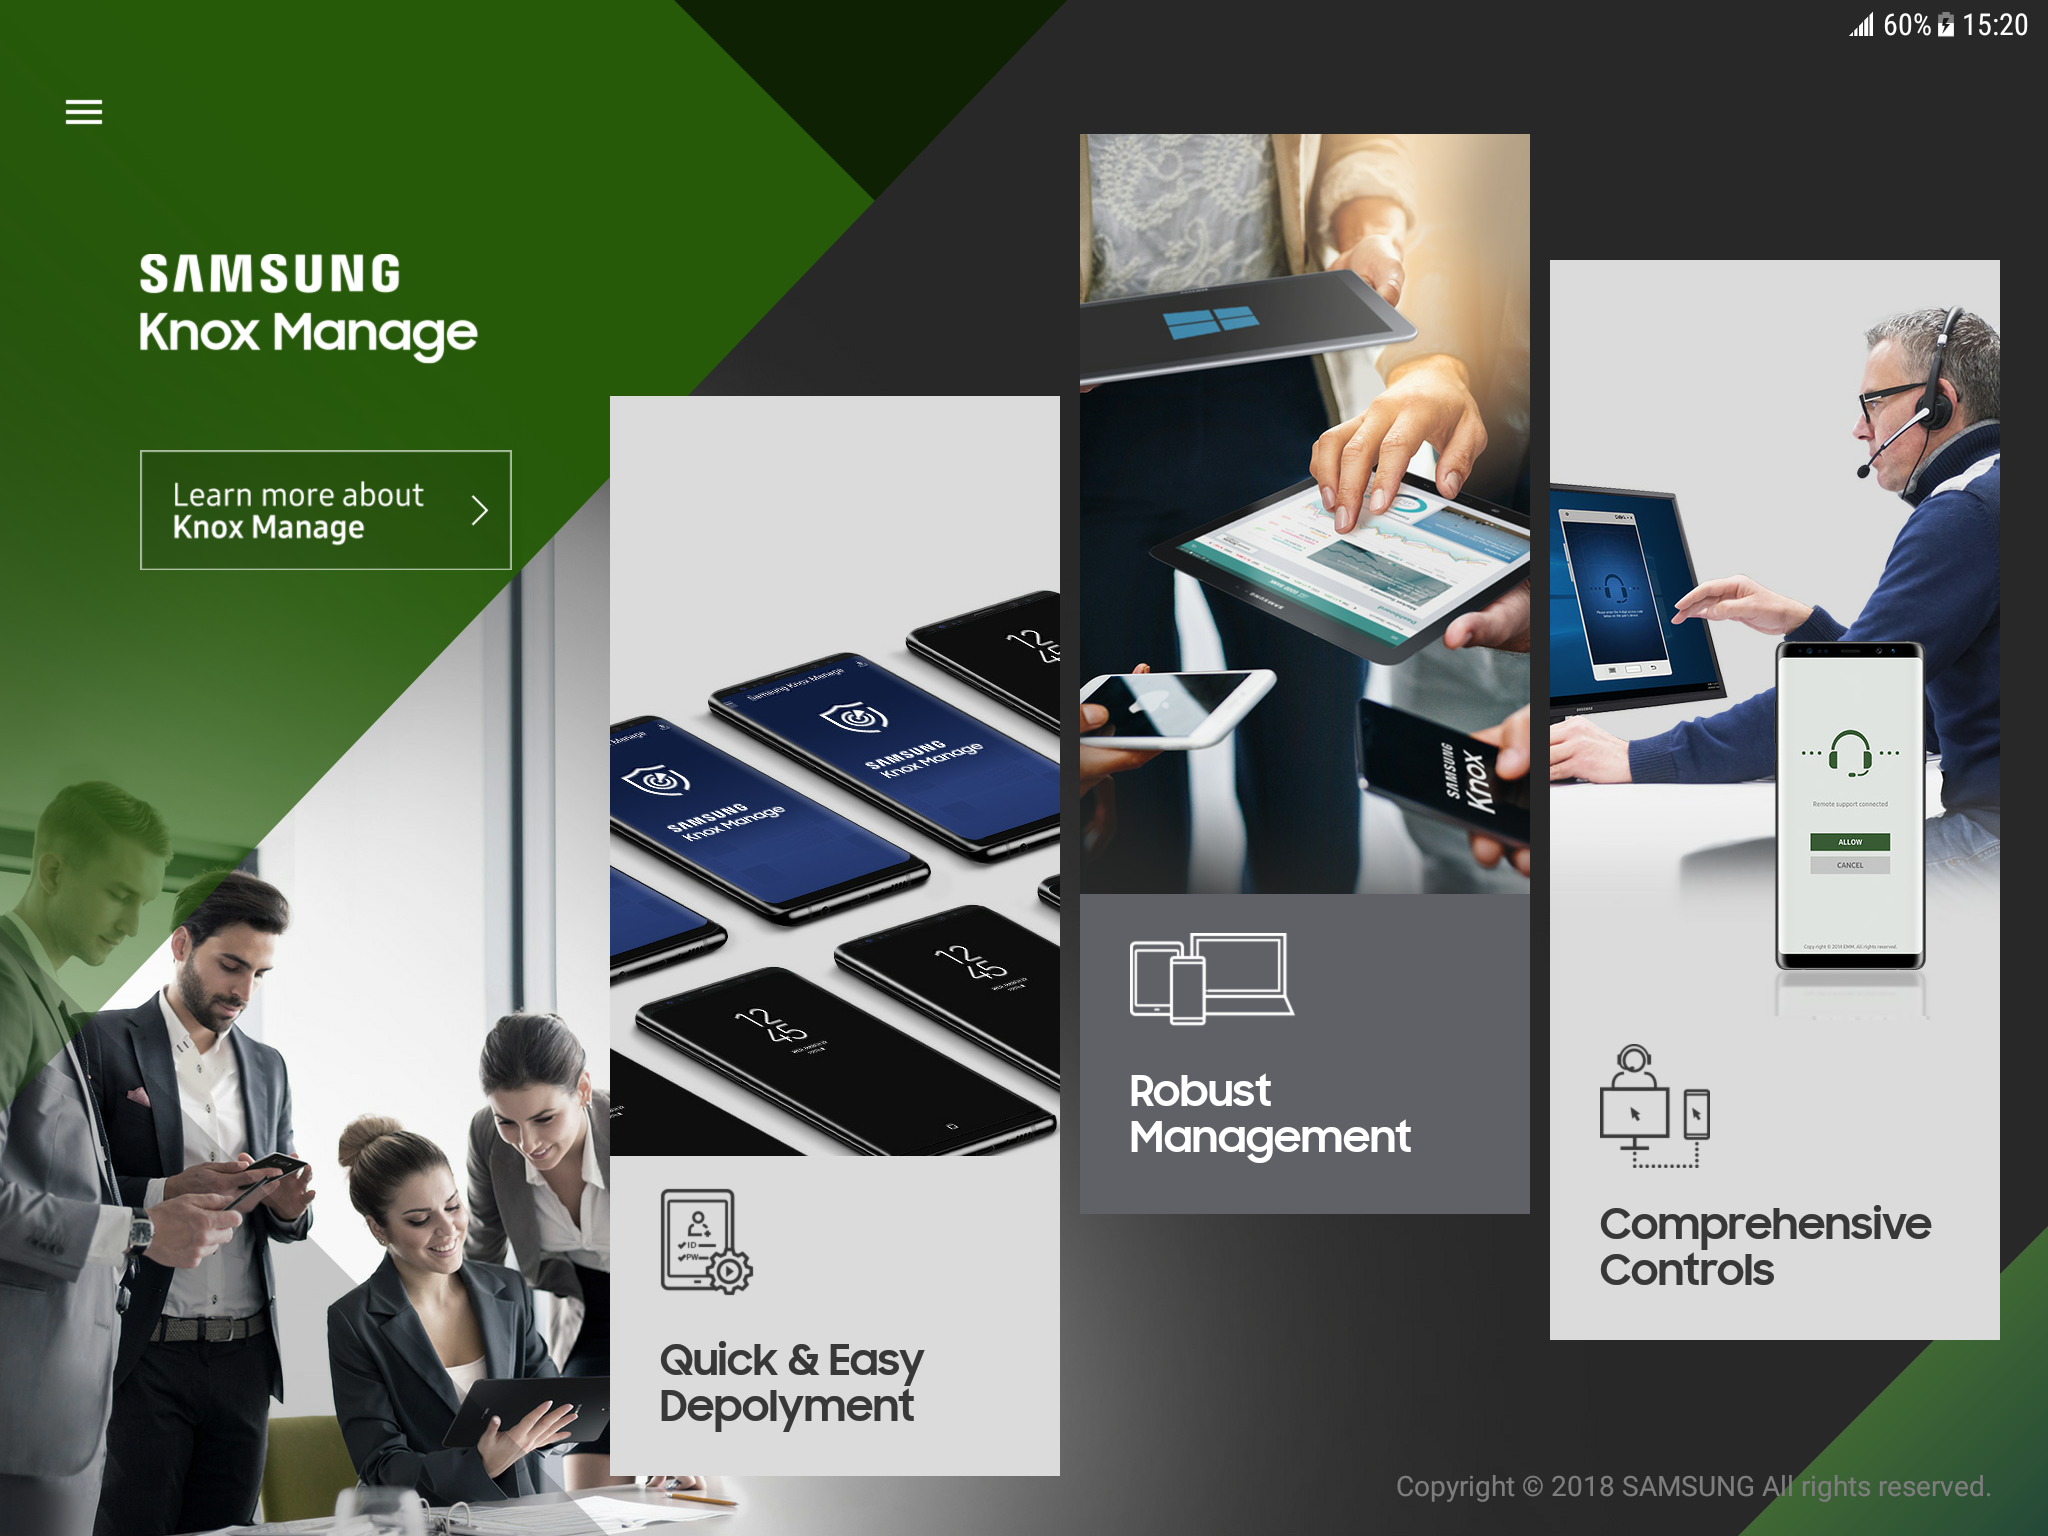 Knox Manage: Experience app – Samsung Knox Support